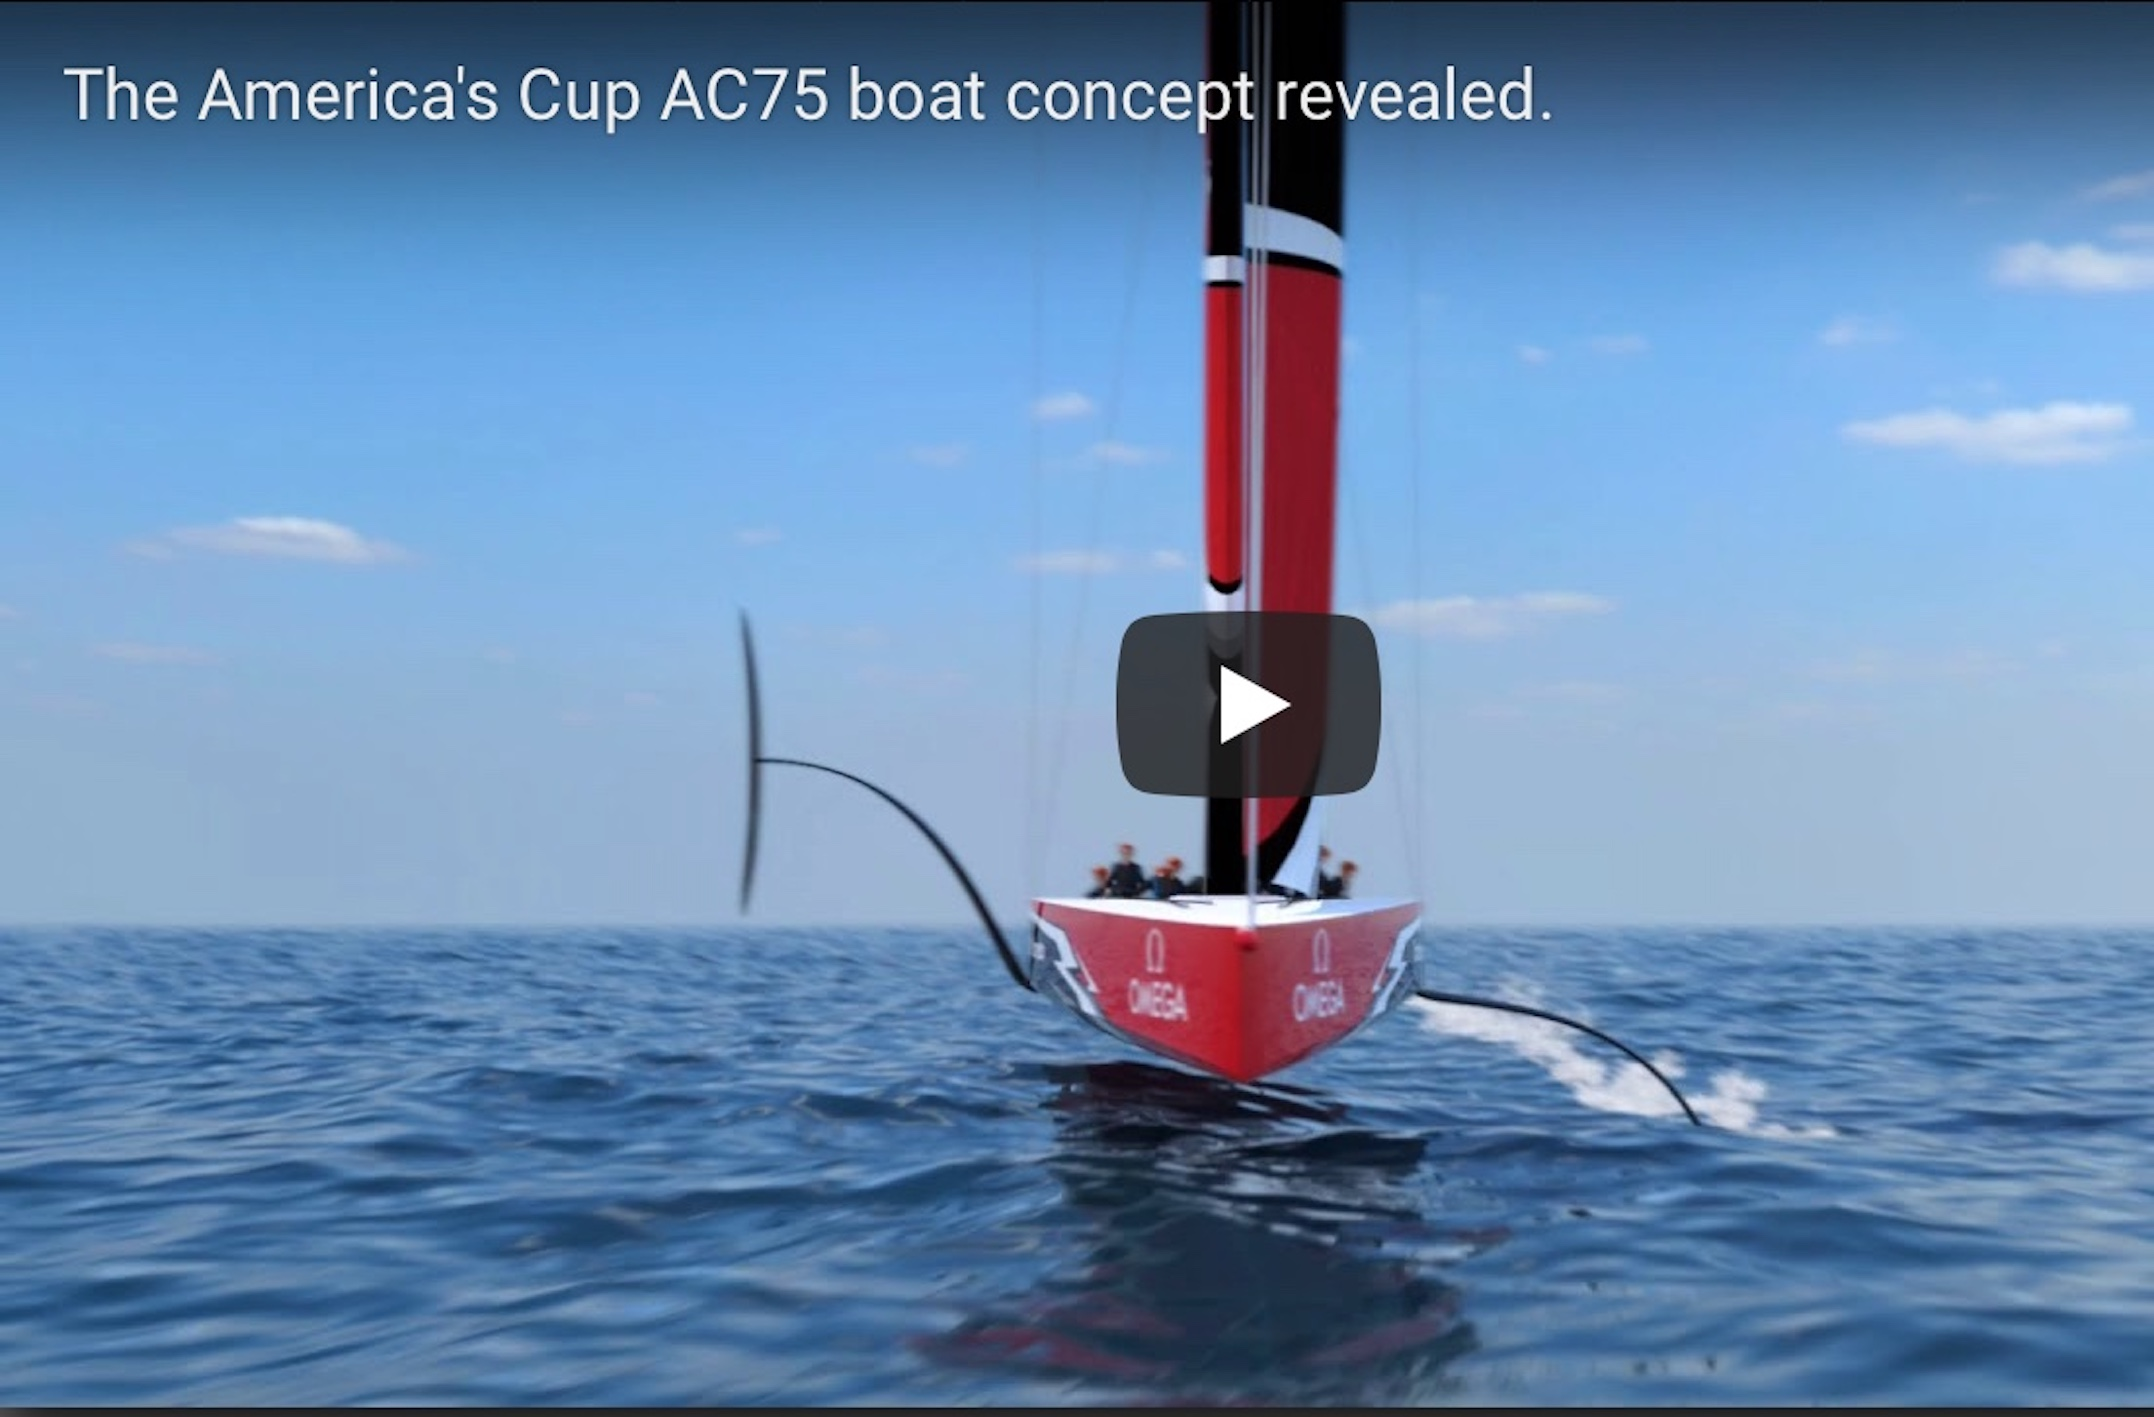 AC75 NEW CONCEPT AMERICA CUP